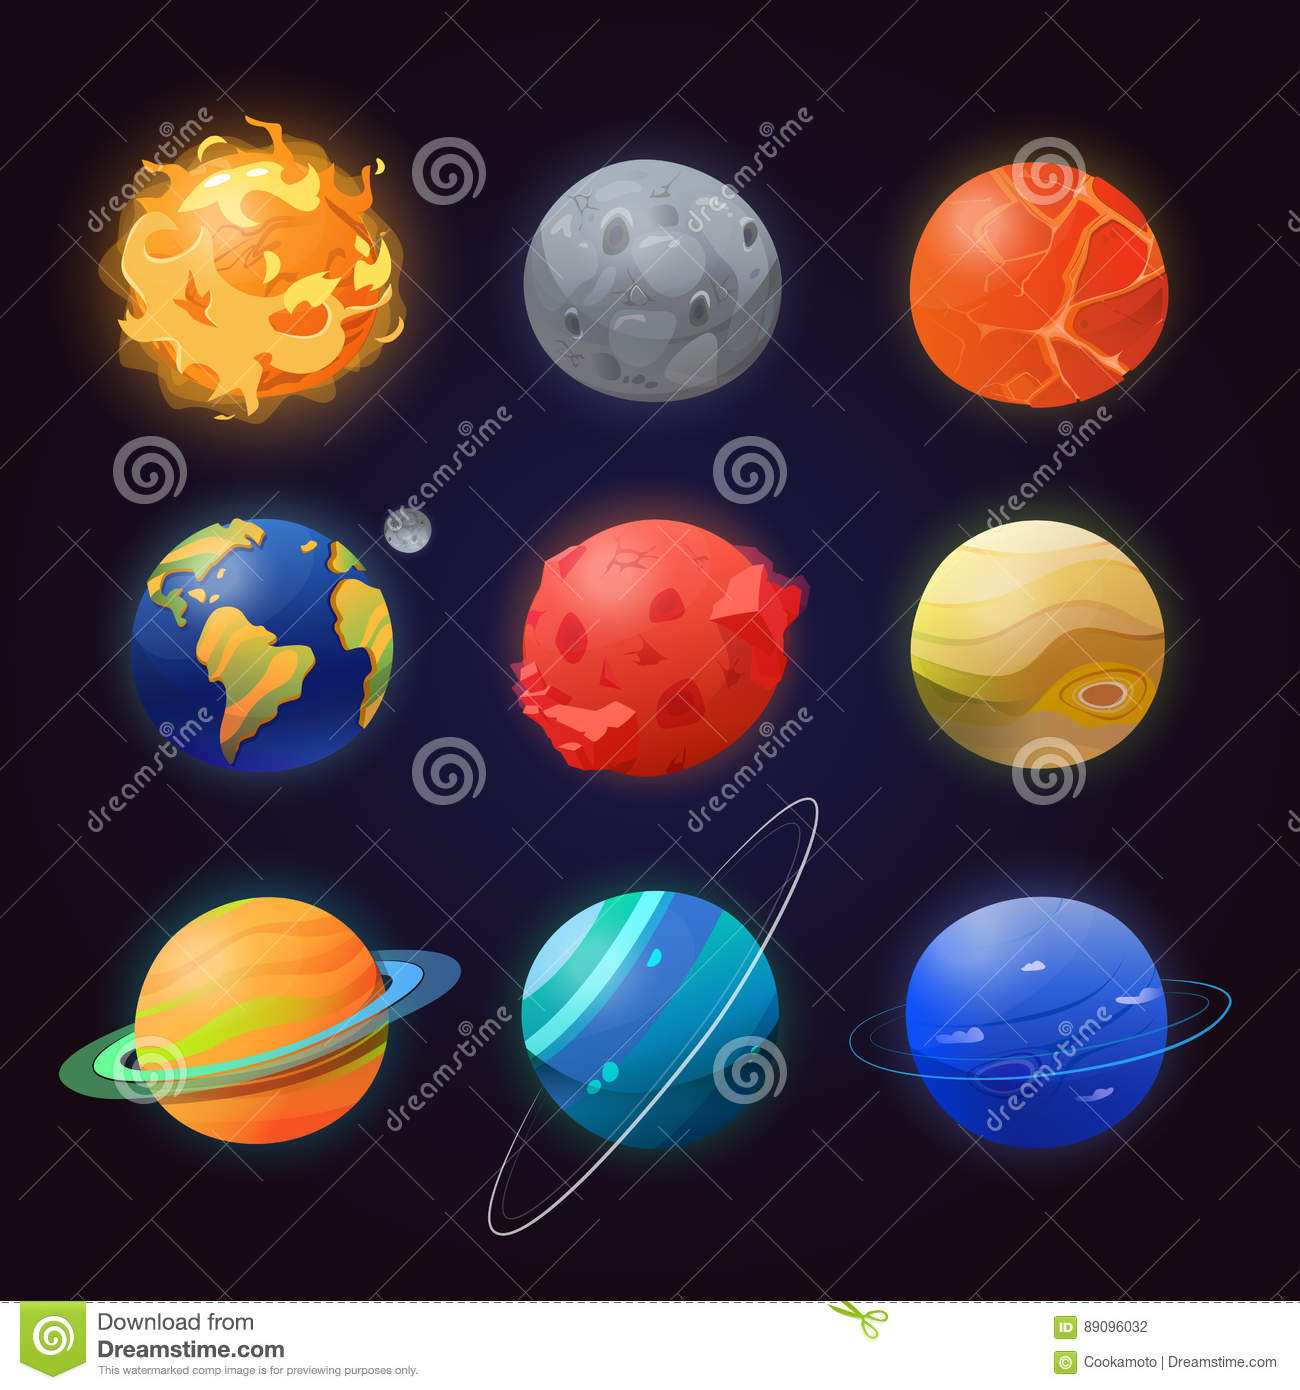 Set of isolated solar system planets and sun.